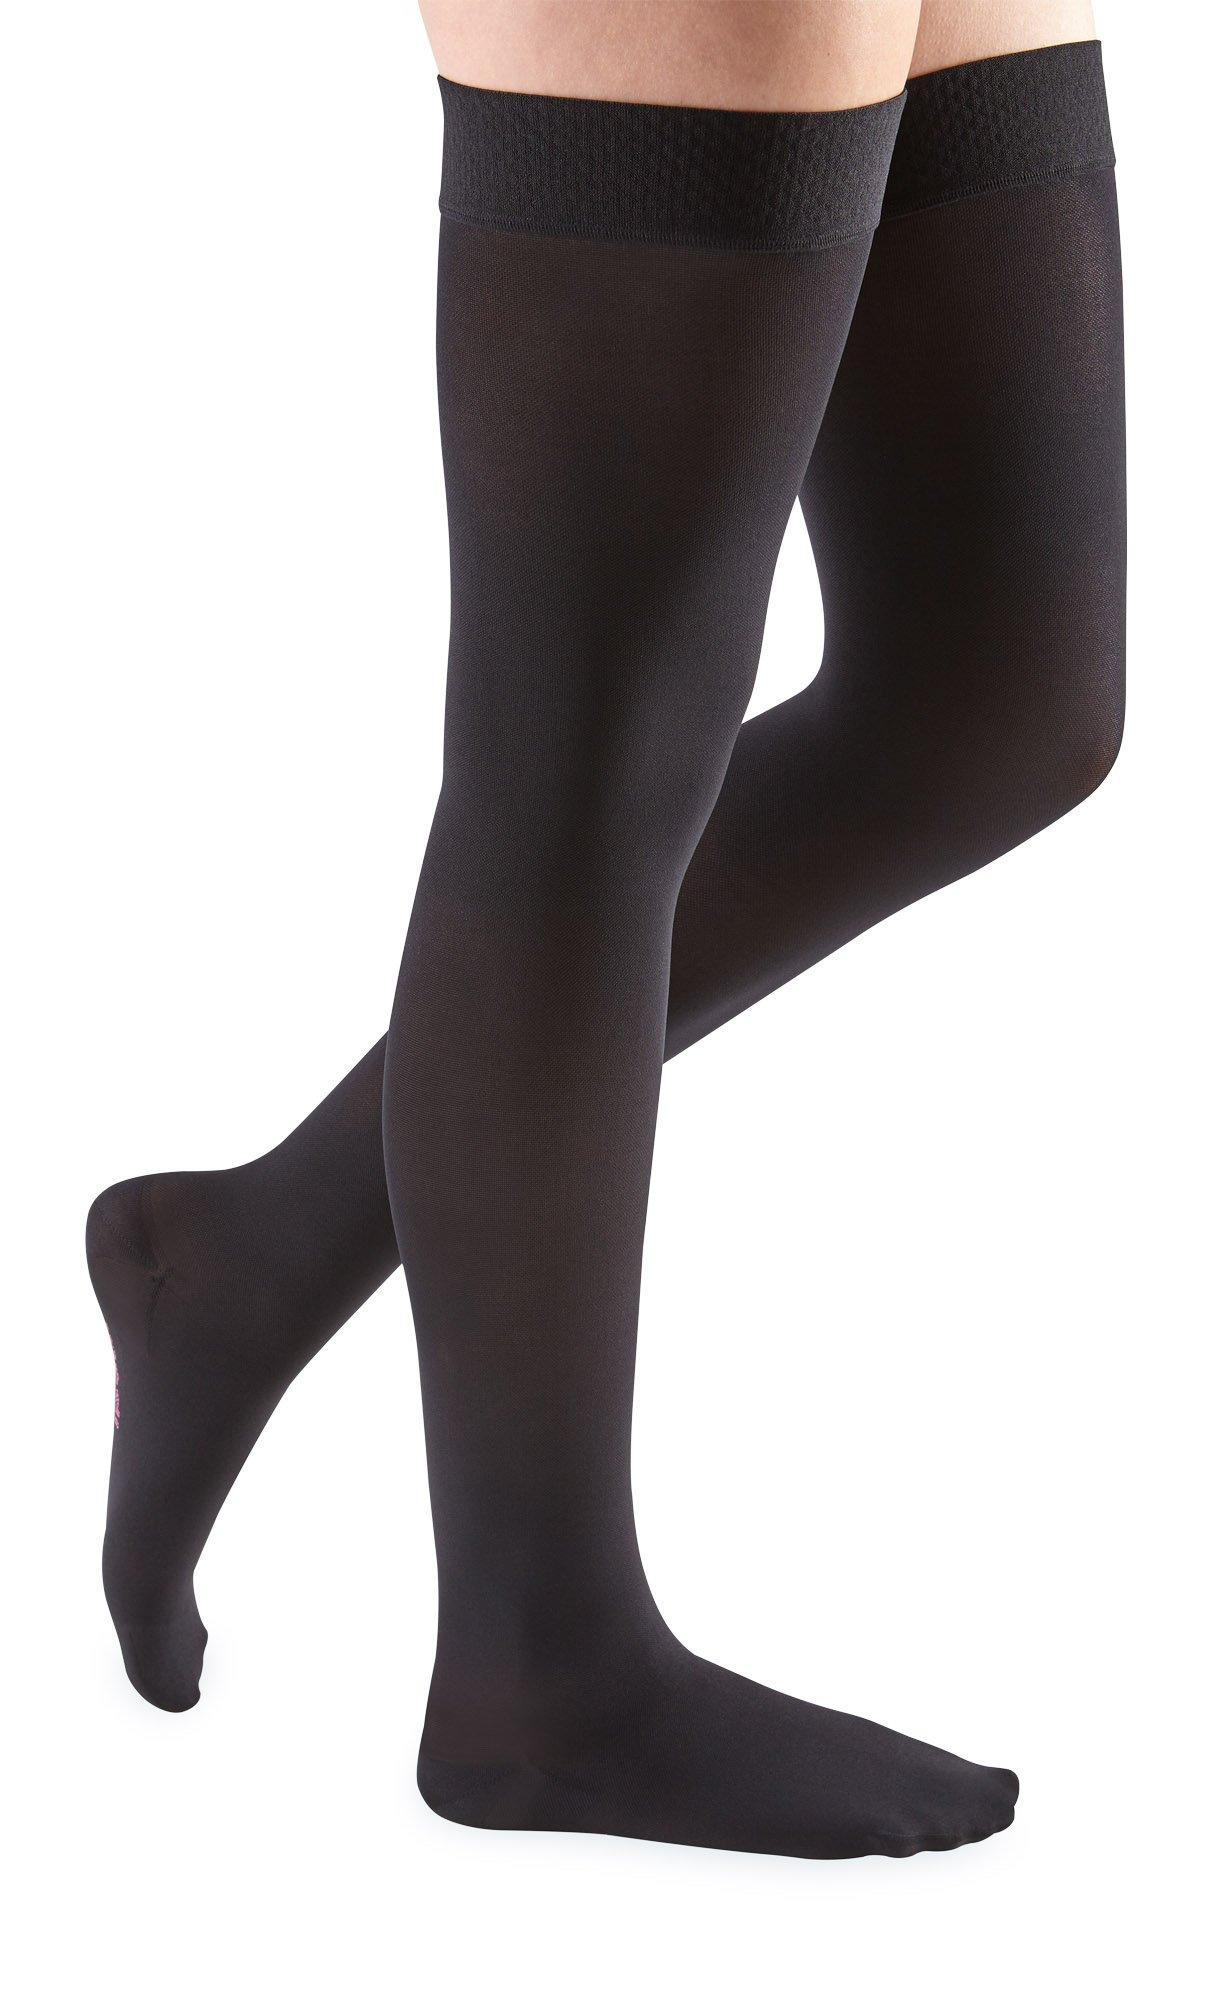 mediven Comfort, 20-30 mmHg, Thigh High Compression Stockings w/Silicone Top-Band, Closed Toe